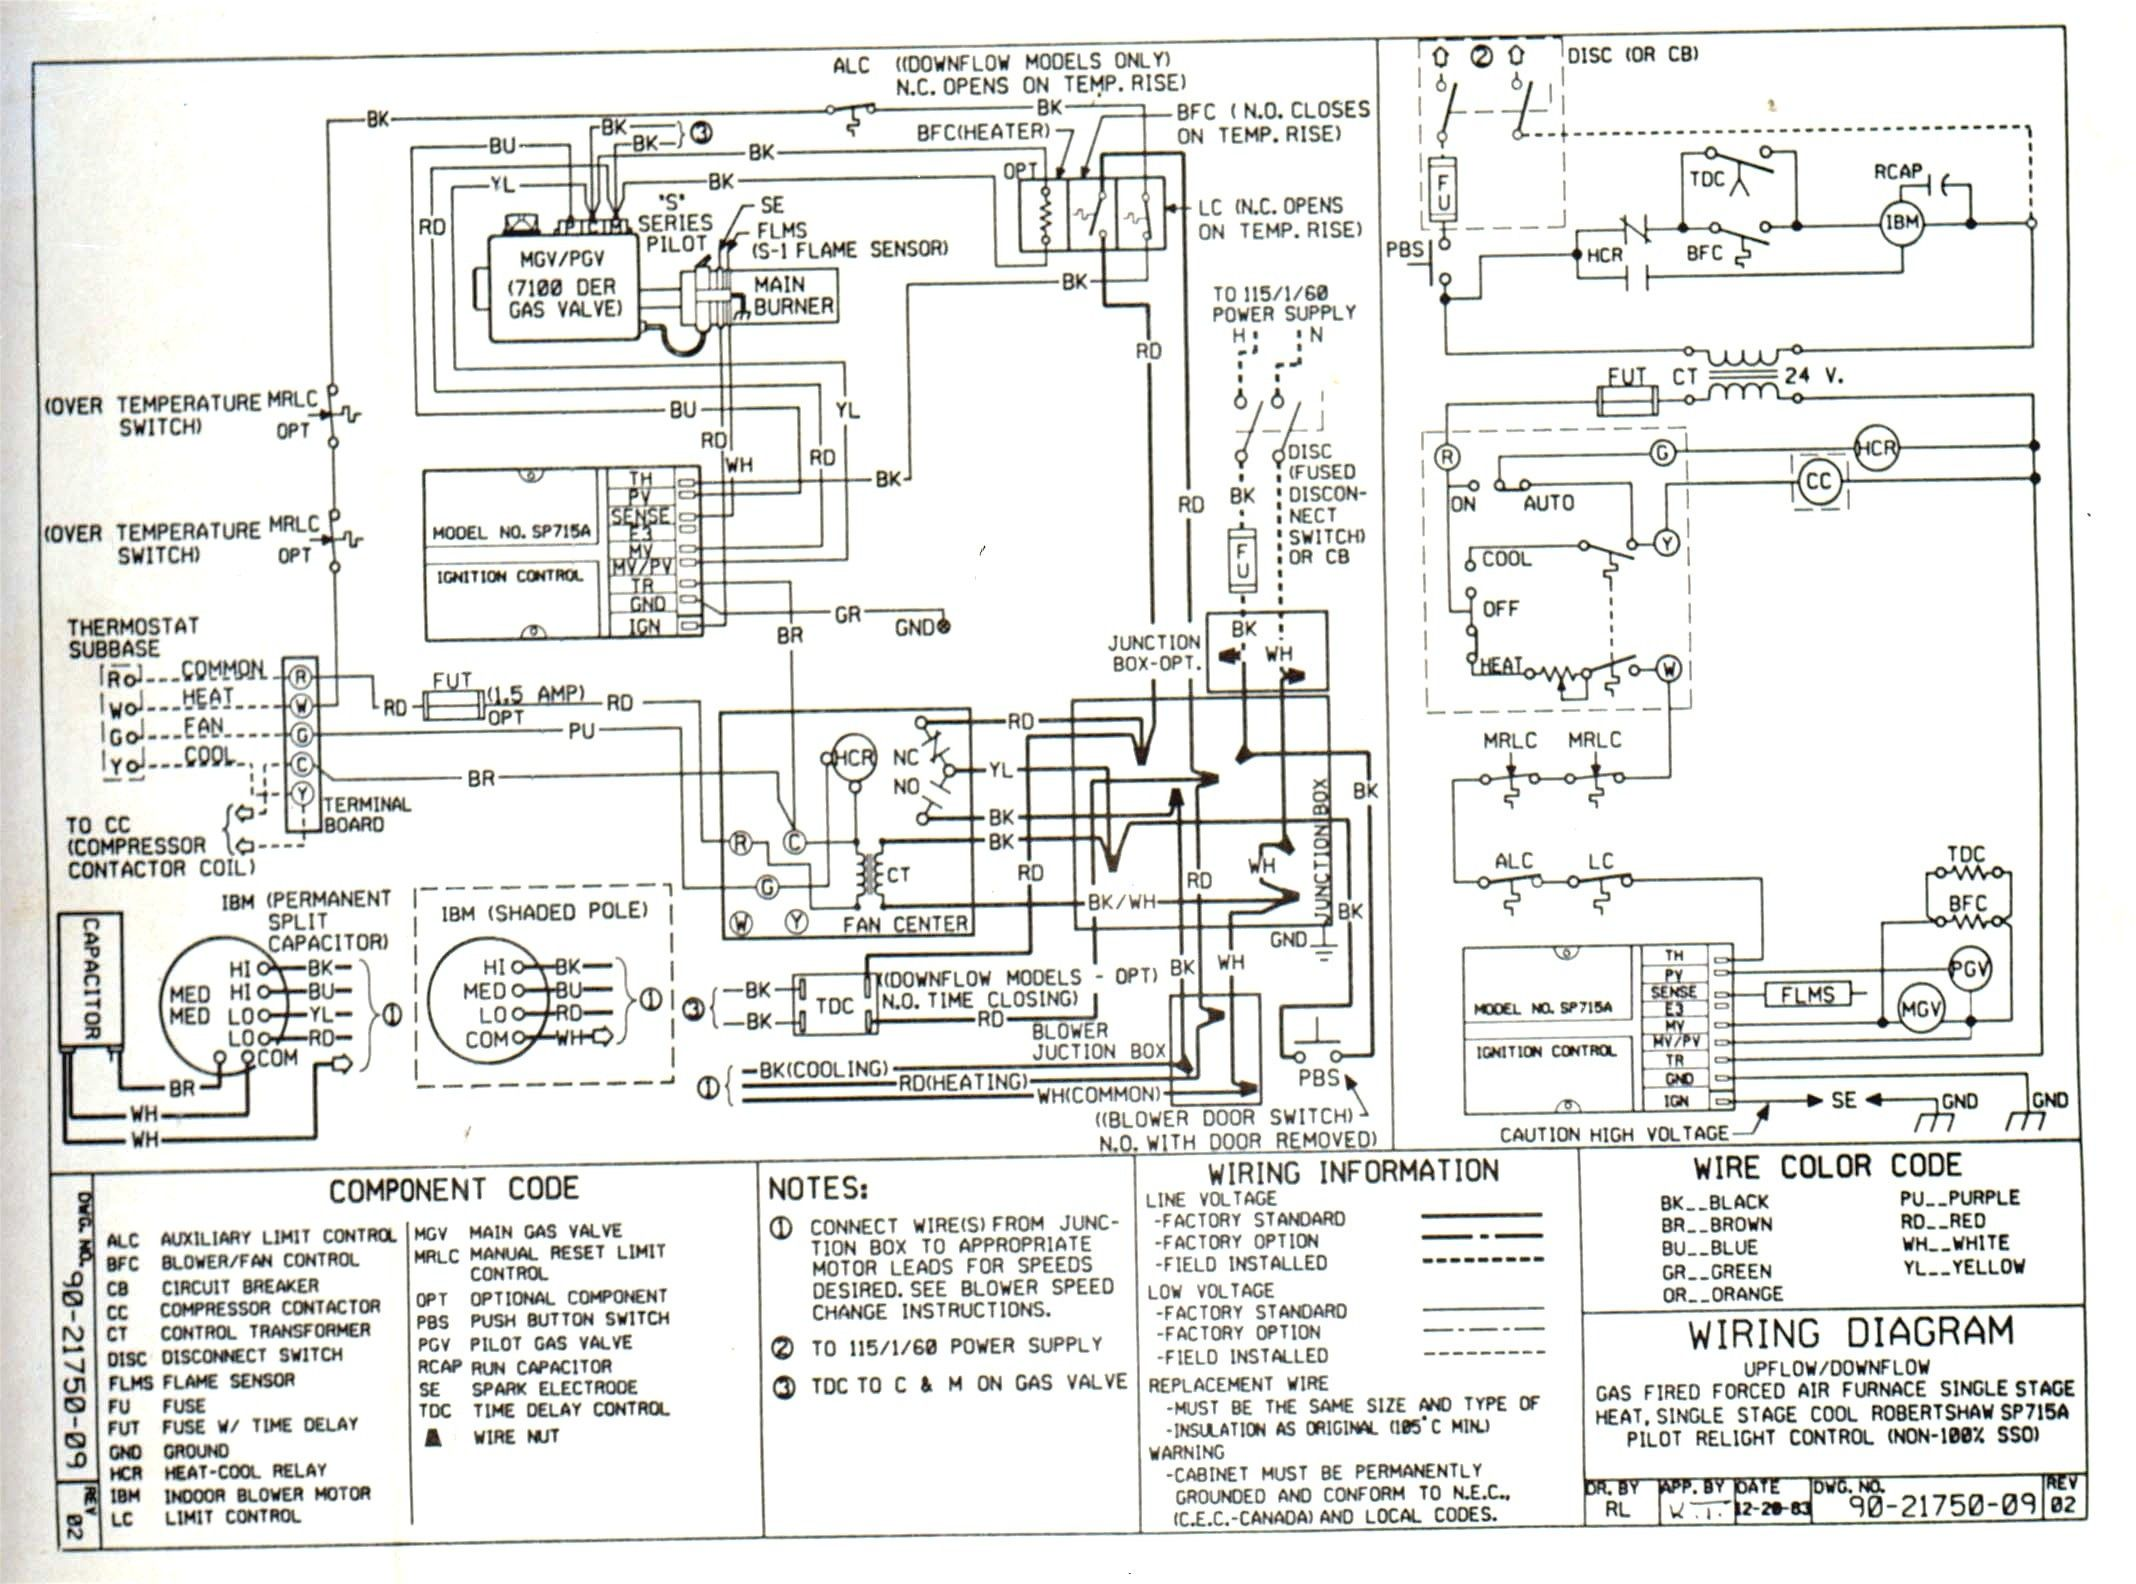 Hid Relay Diagram Awesome Wiring Diagram Thermostat Wiring Electrical Diagram